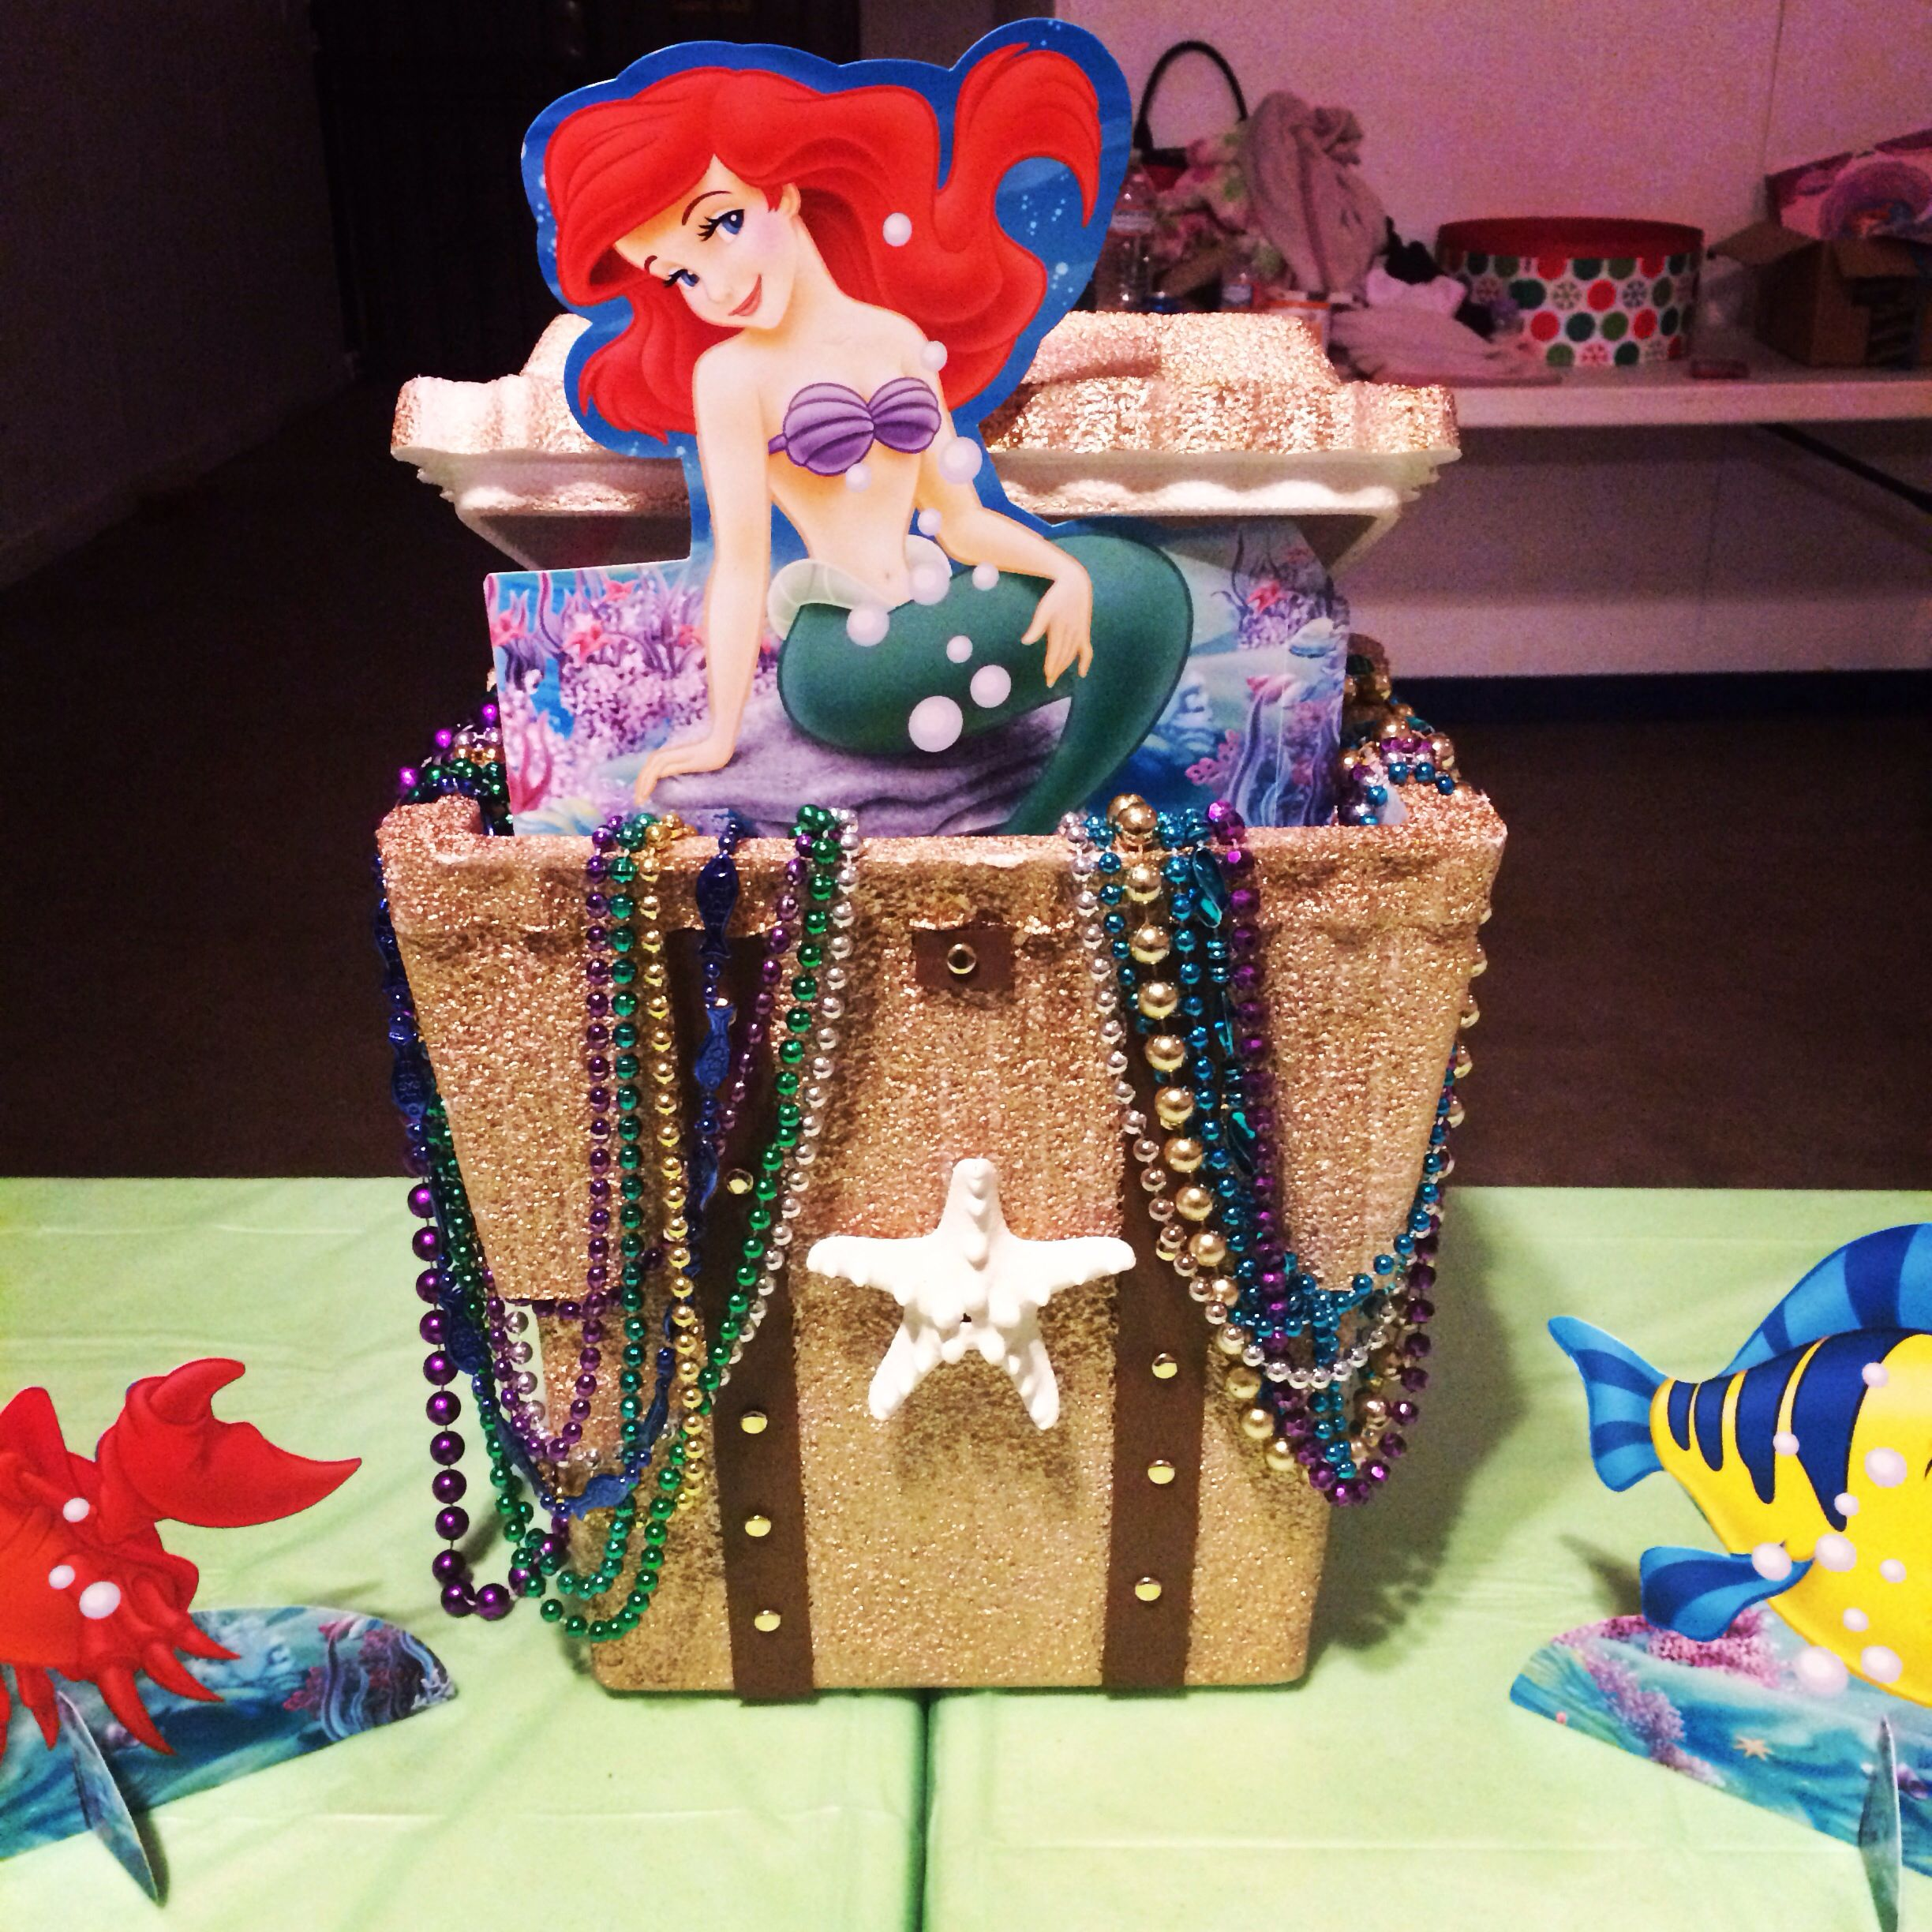 Tremendous Little Mermaid Styrofoam Treasure Chest Centerpiece Party Home Interior And Landscaping Ologienasavecom